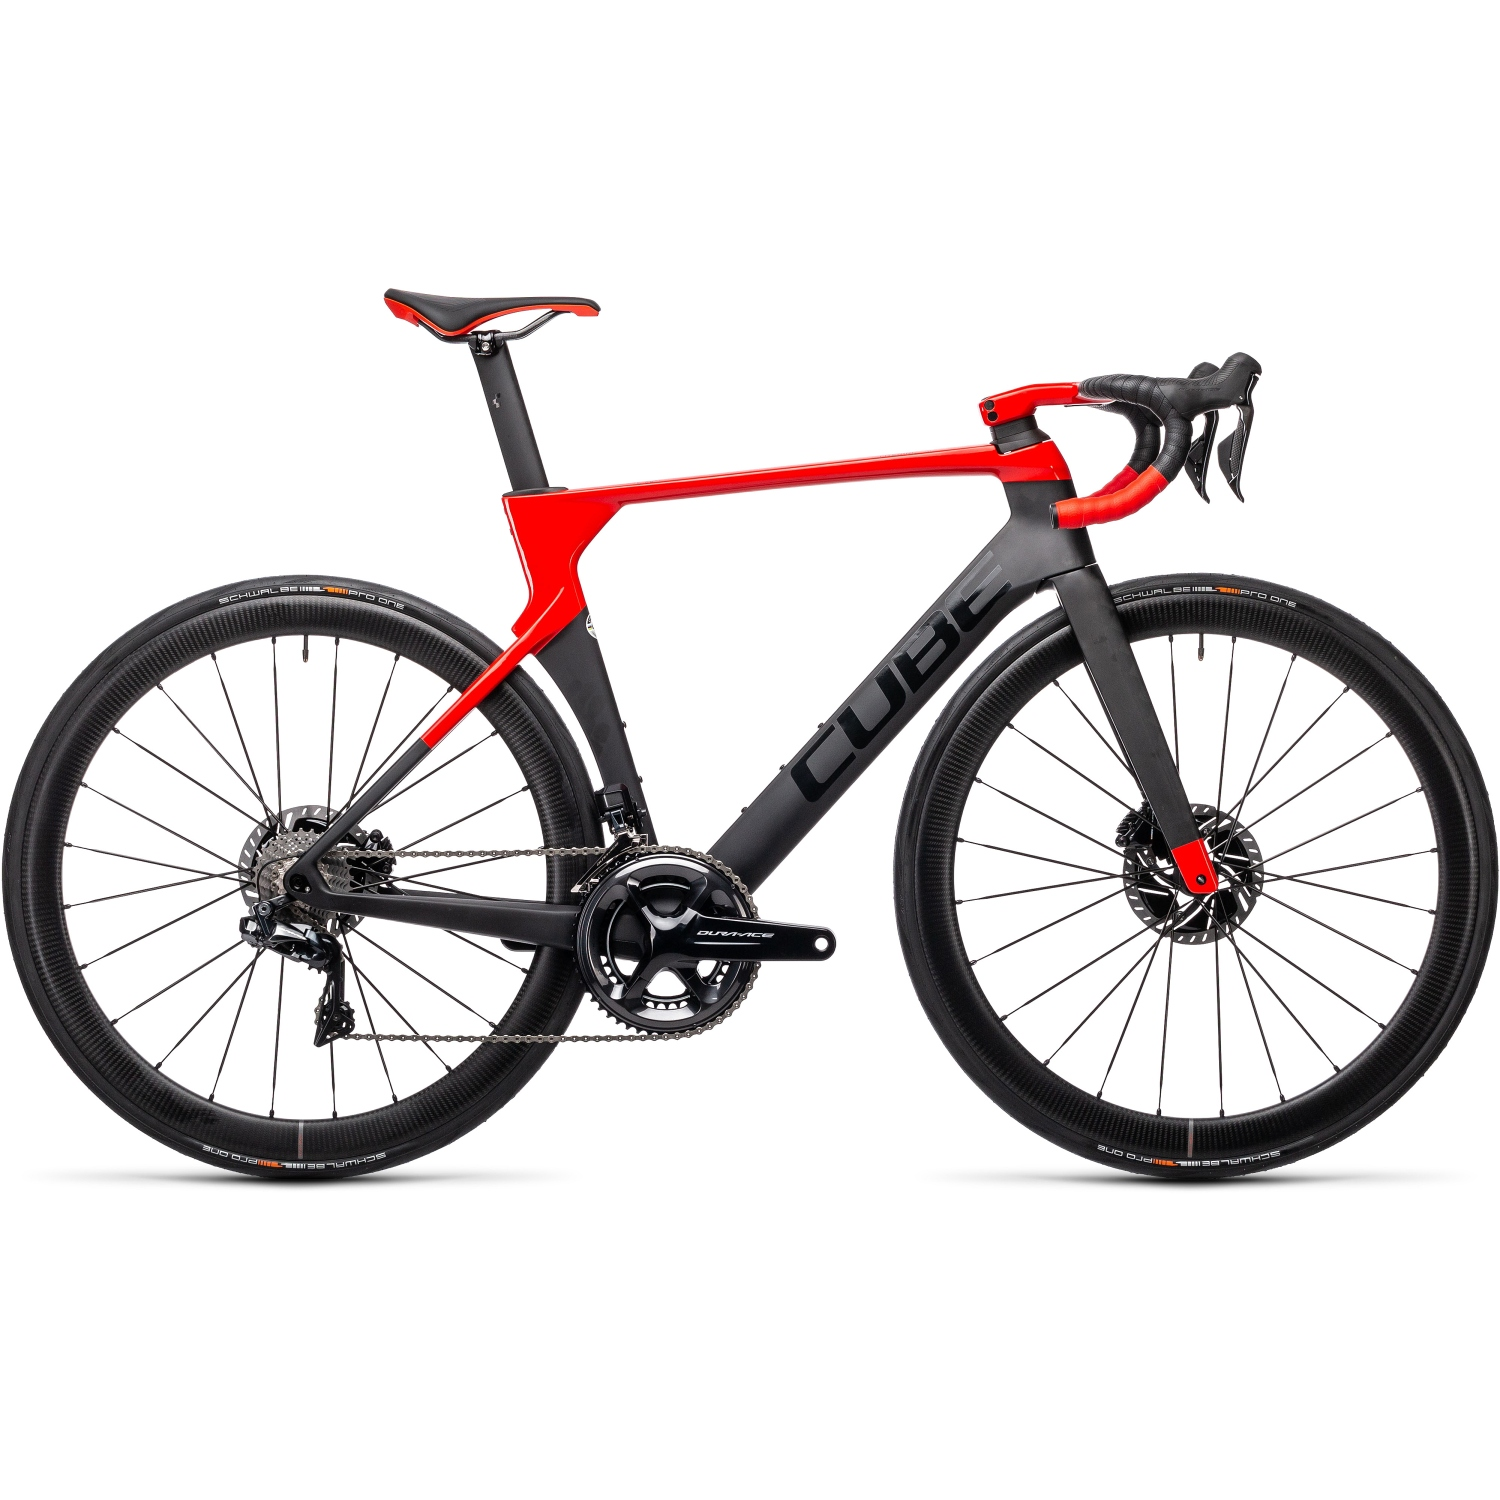 Image of CUBE LITENING C:68X SL Dura Ace Di2 - Carbon Roadbike - 2021 - carbon/red